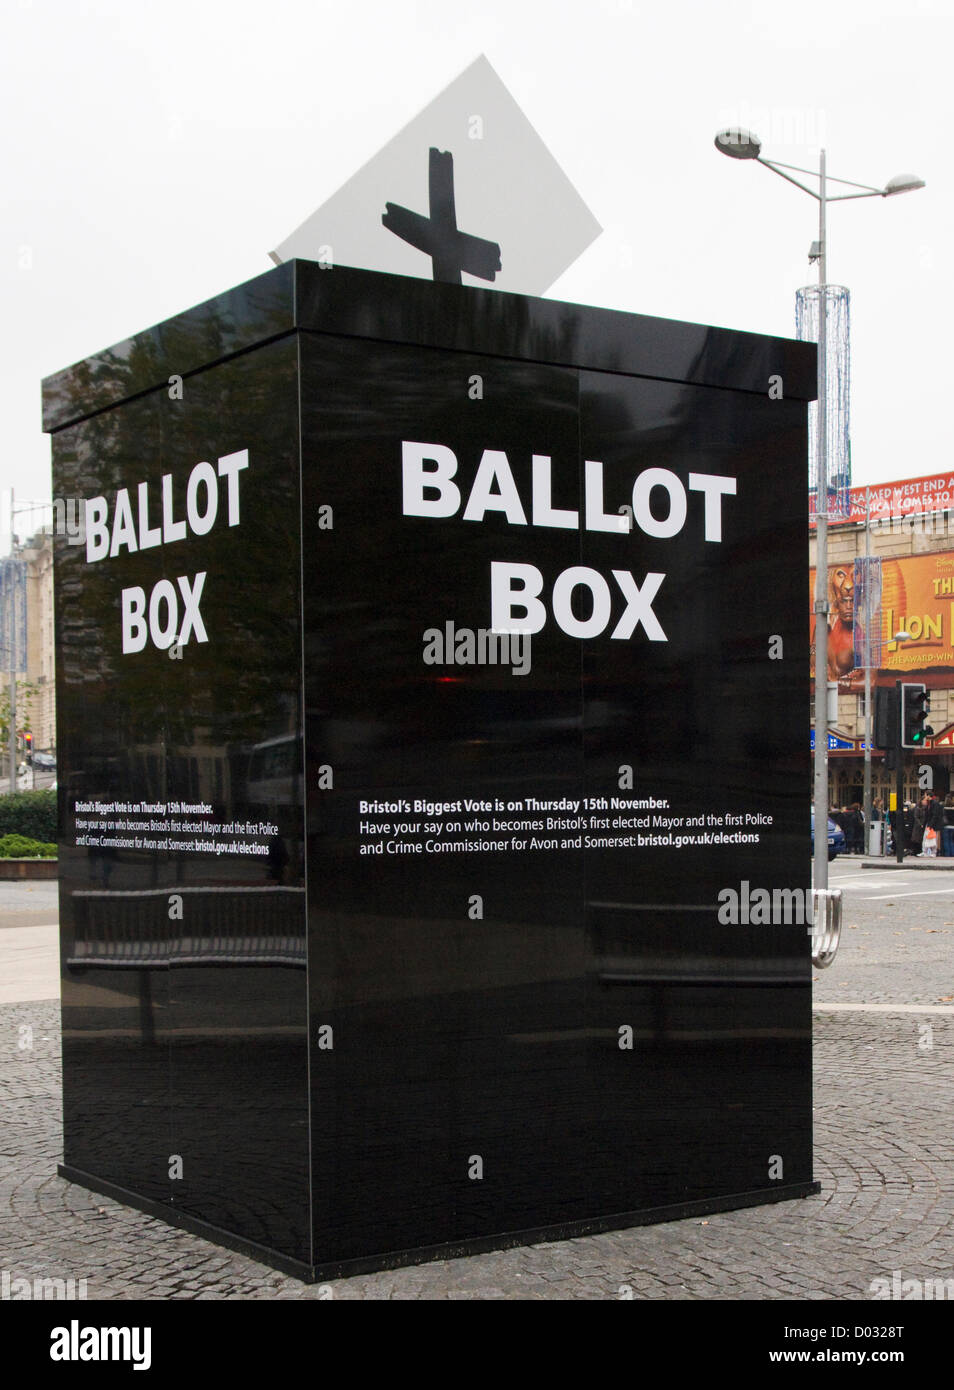 Bristol, UK. 15th November 2012. A oversize mock ballot box placed in the center of Bristol, England. This is to - Stock Image